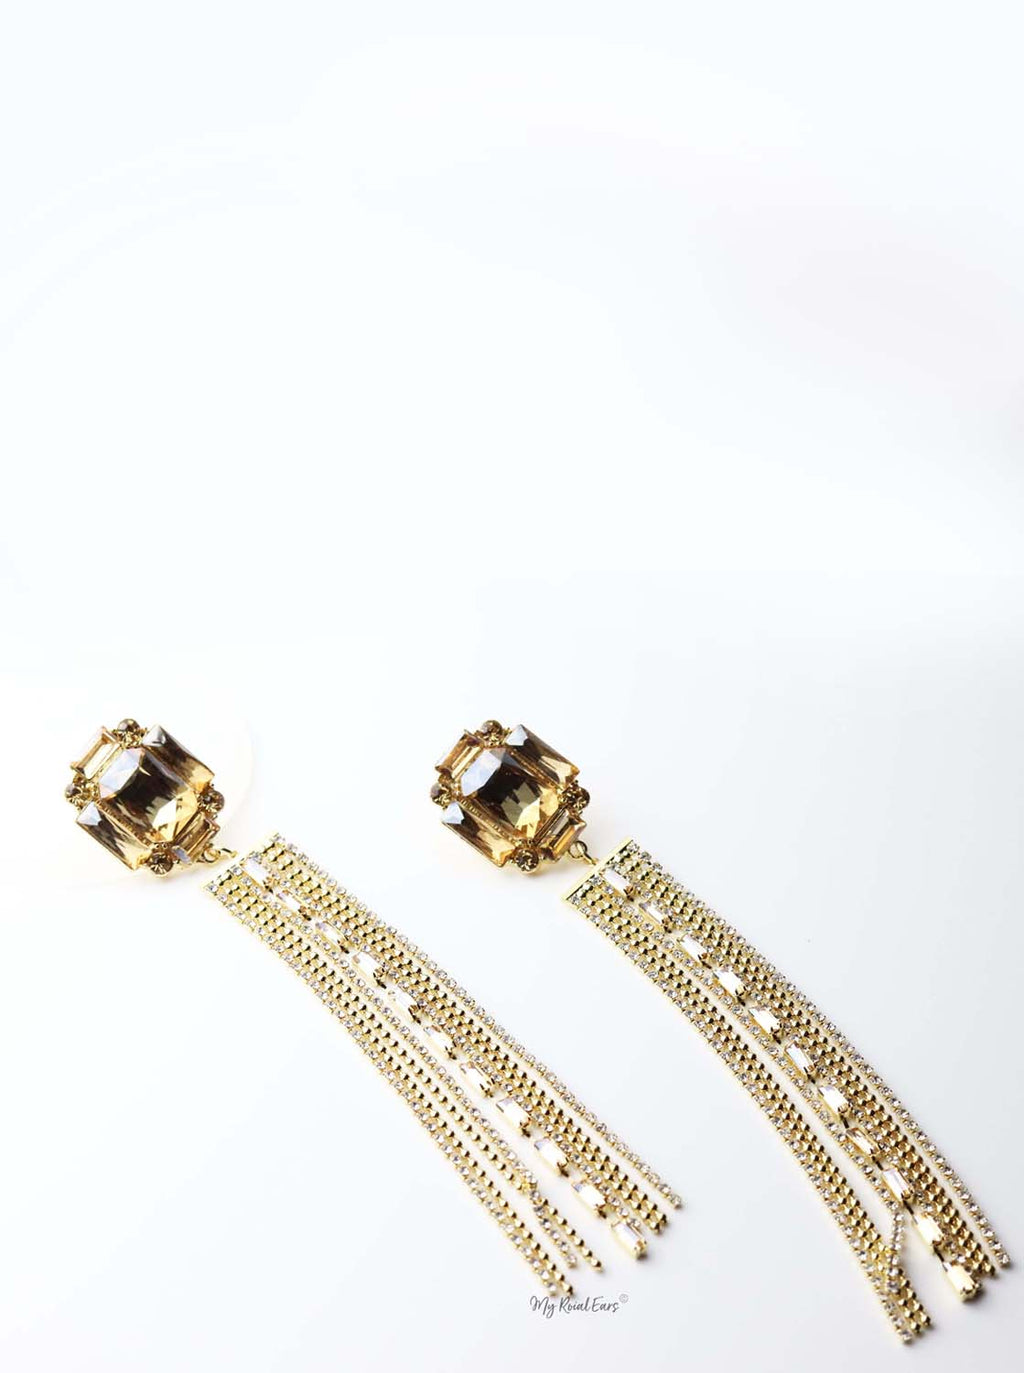 Tisiphone-gold plated extravagant tassel drop earrings - My Roial Ears LTD